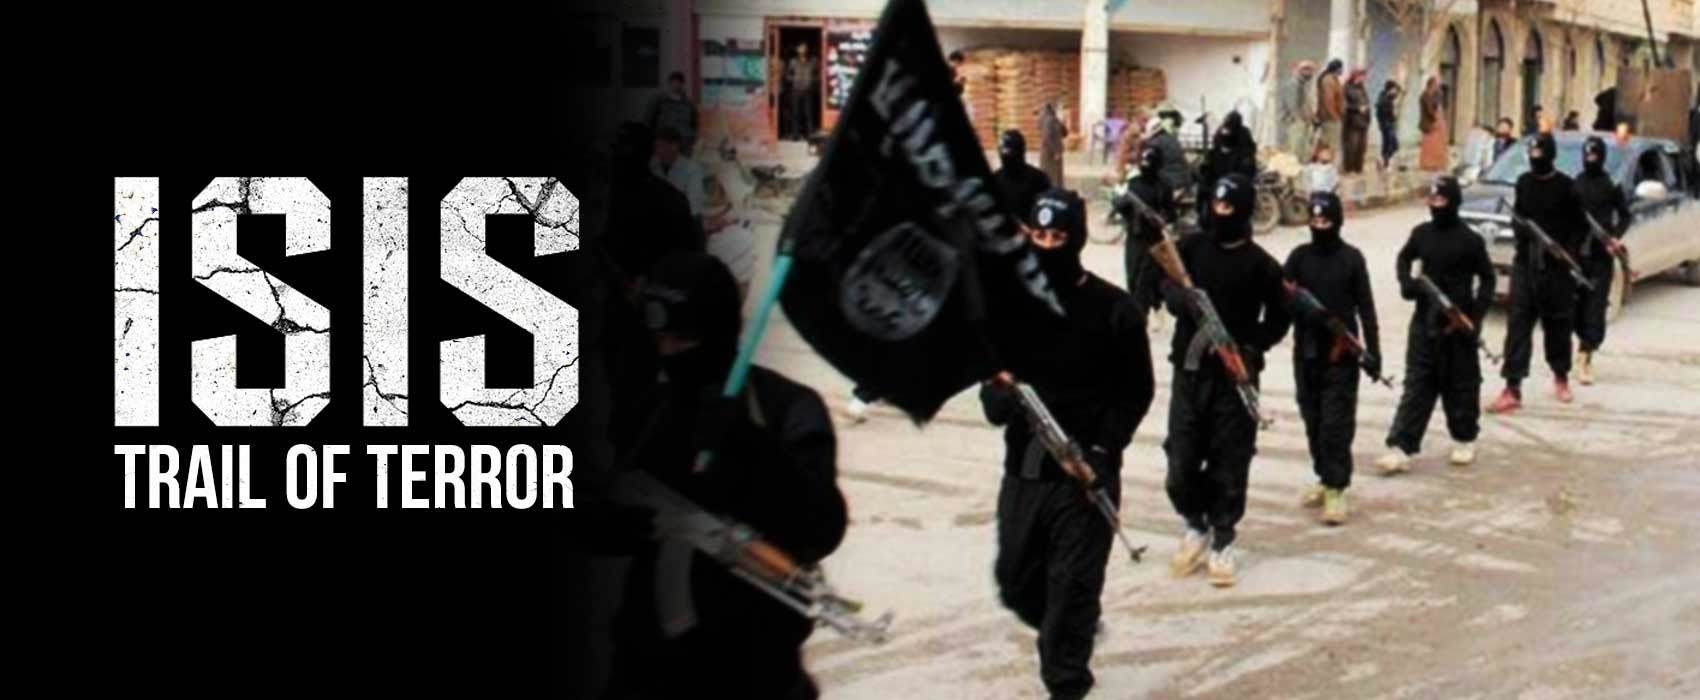 Tribalism VS. Terrorism - The ISIS Cult of Terror